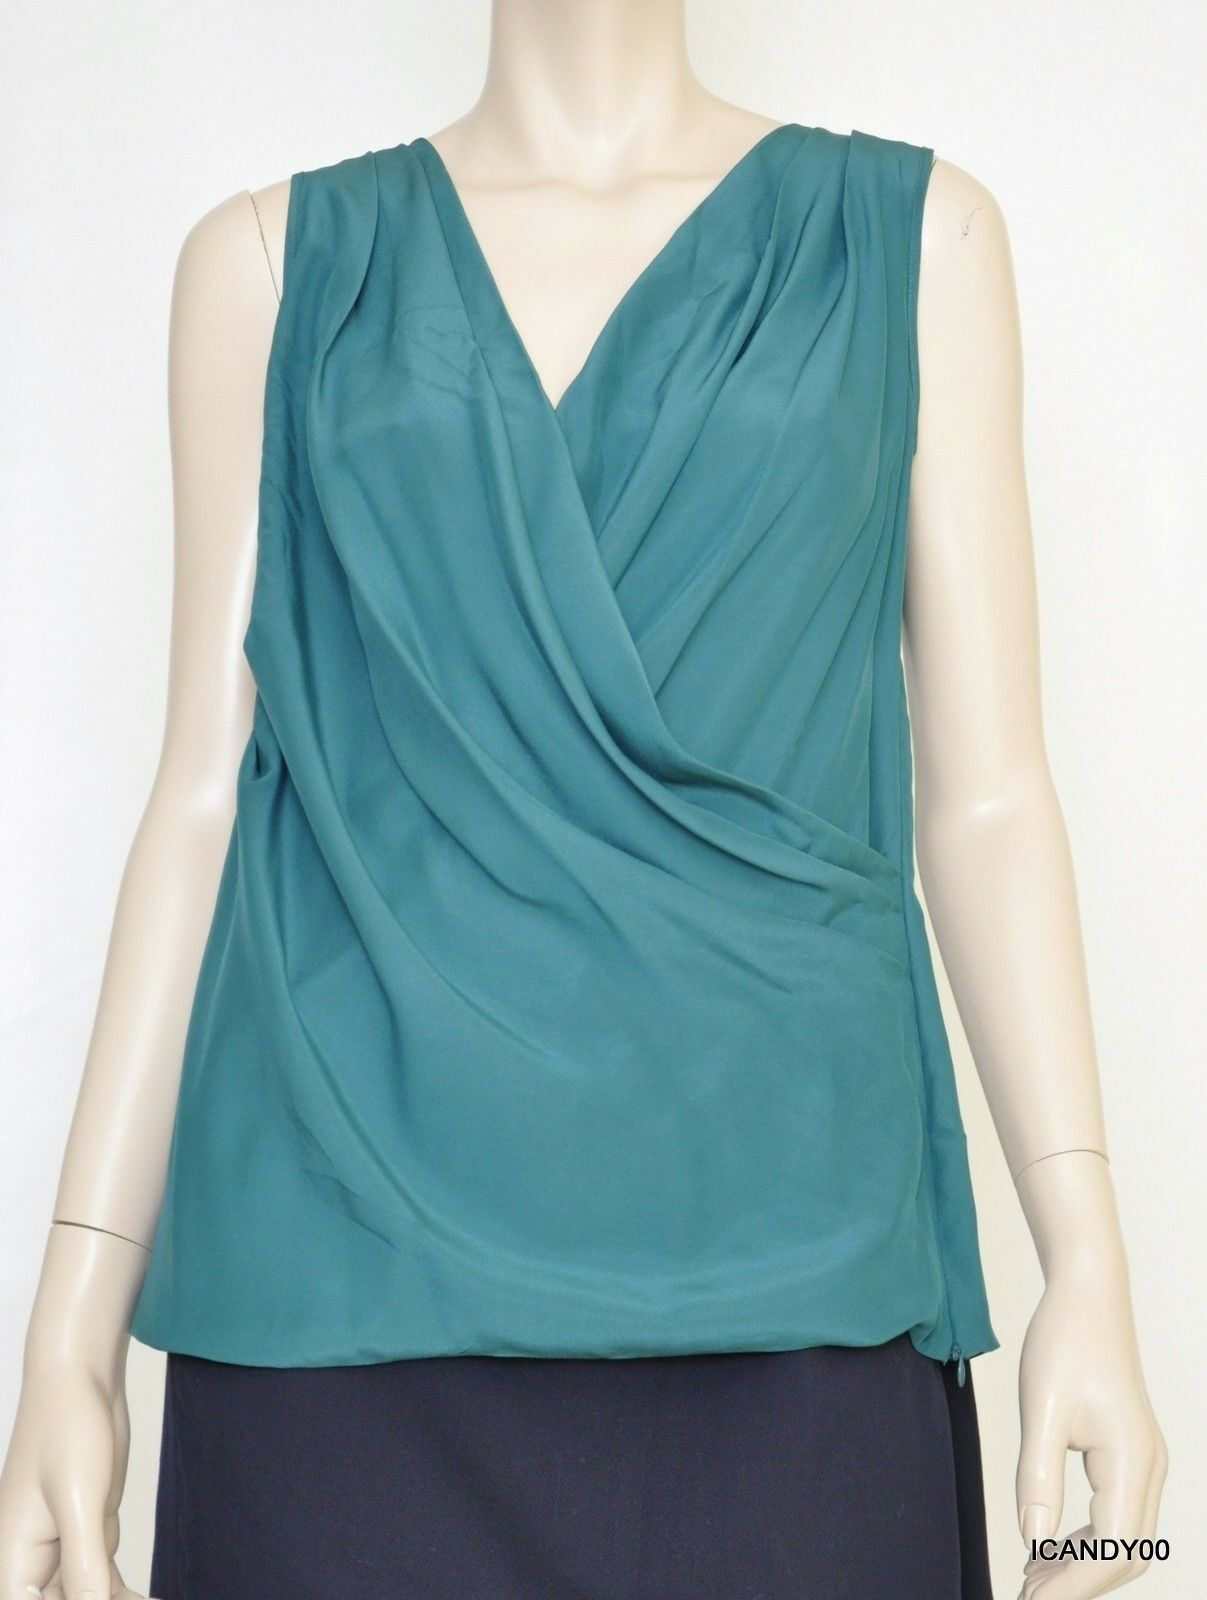 Nwt  Cynthia Steffe Silk Lace Faux Wrap  Dress Top Blouse Deep Jade 6